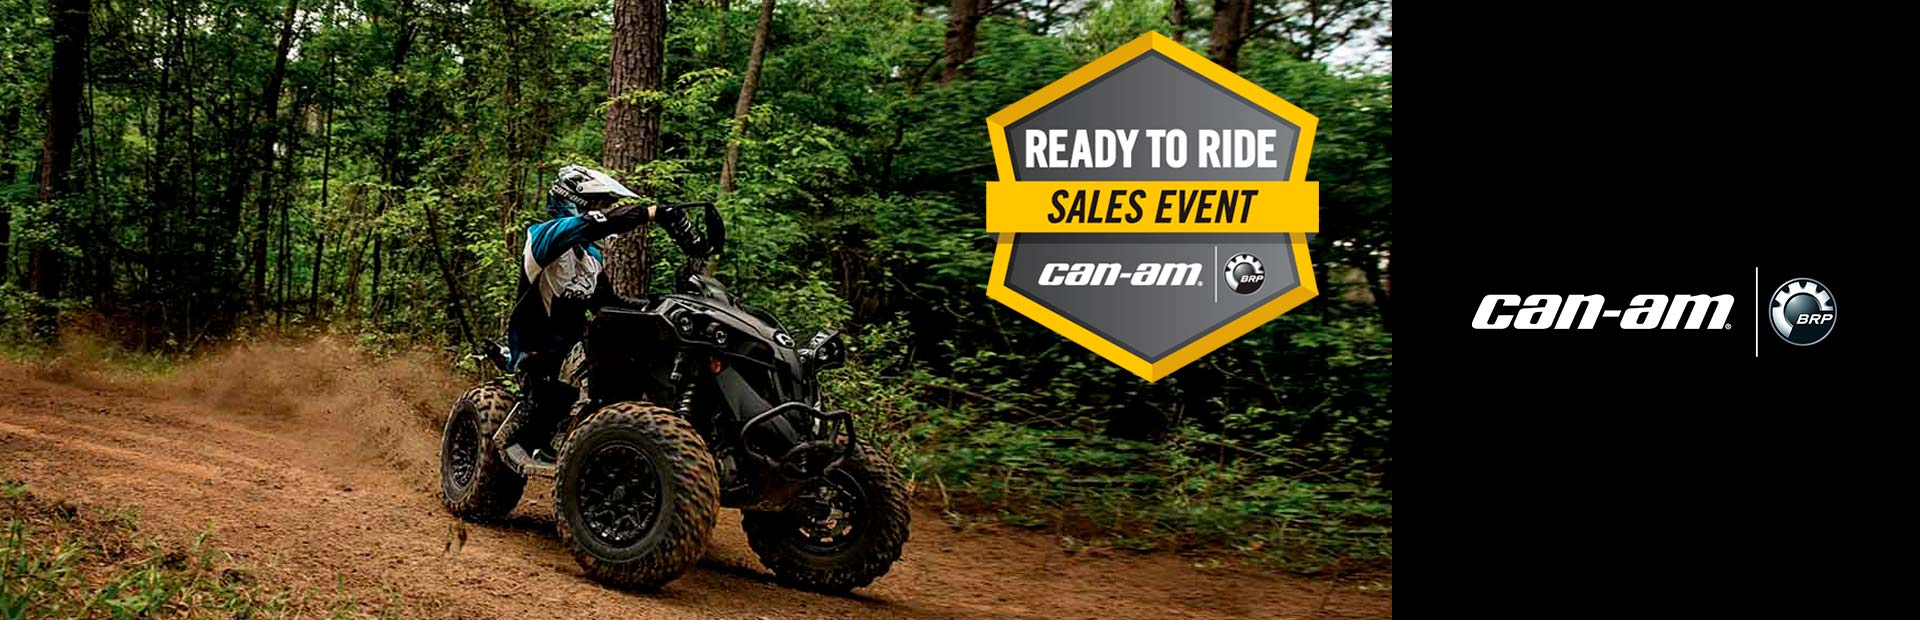 Can-Am: Ready to Ride Sales Event - Renegade